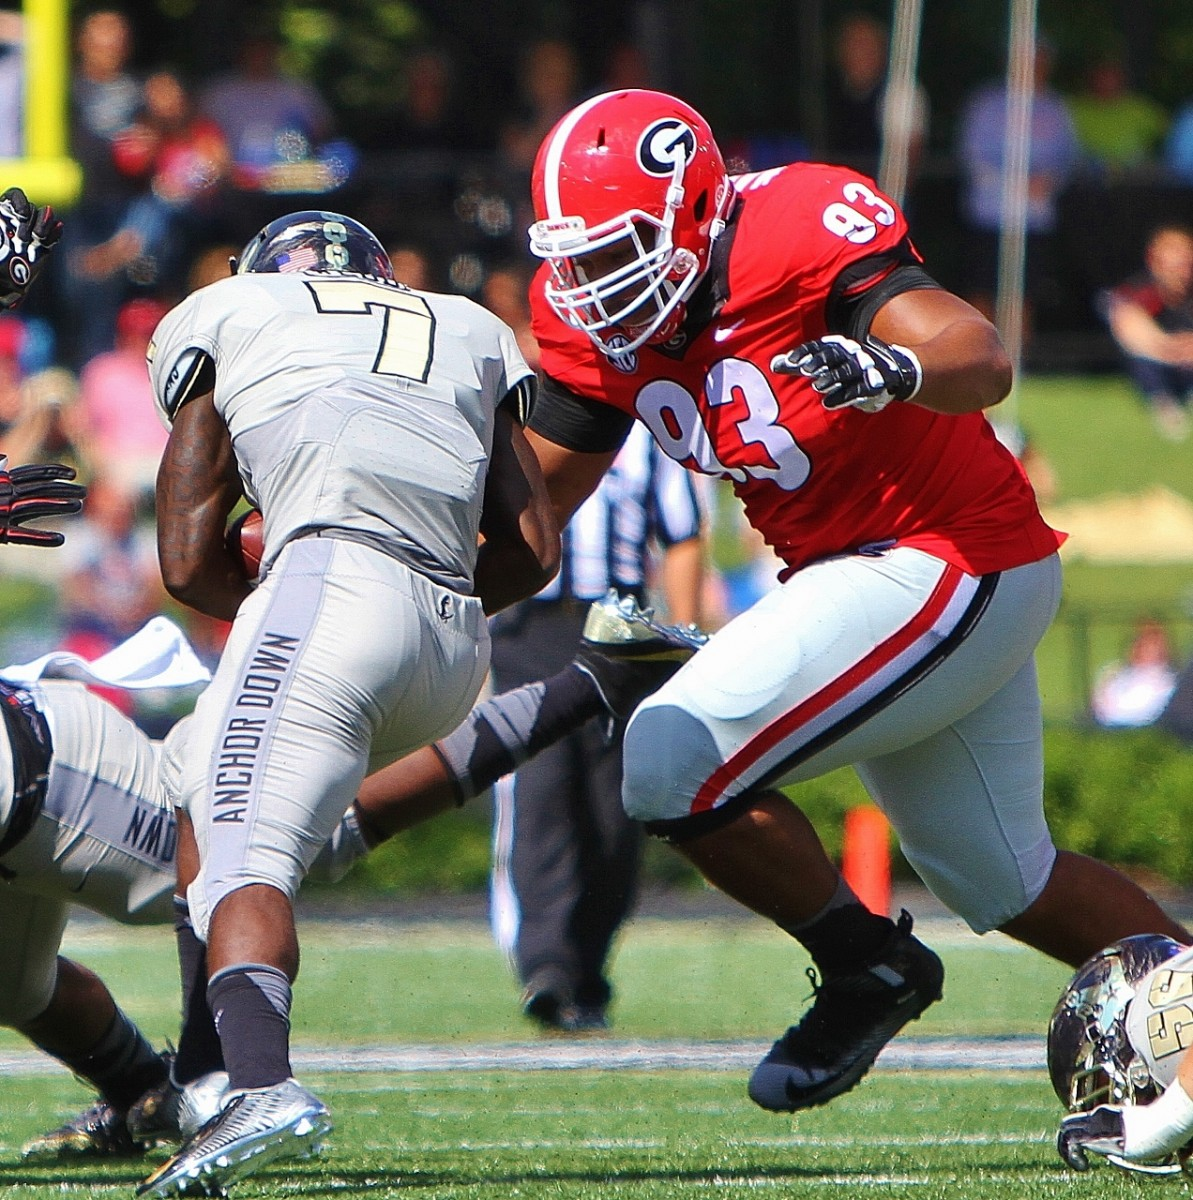 Chris Mayes zeros in UGA vs. Vanderbilt 09-12-2015 (Photo by Rob Saye)